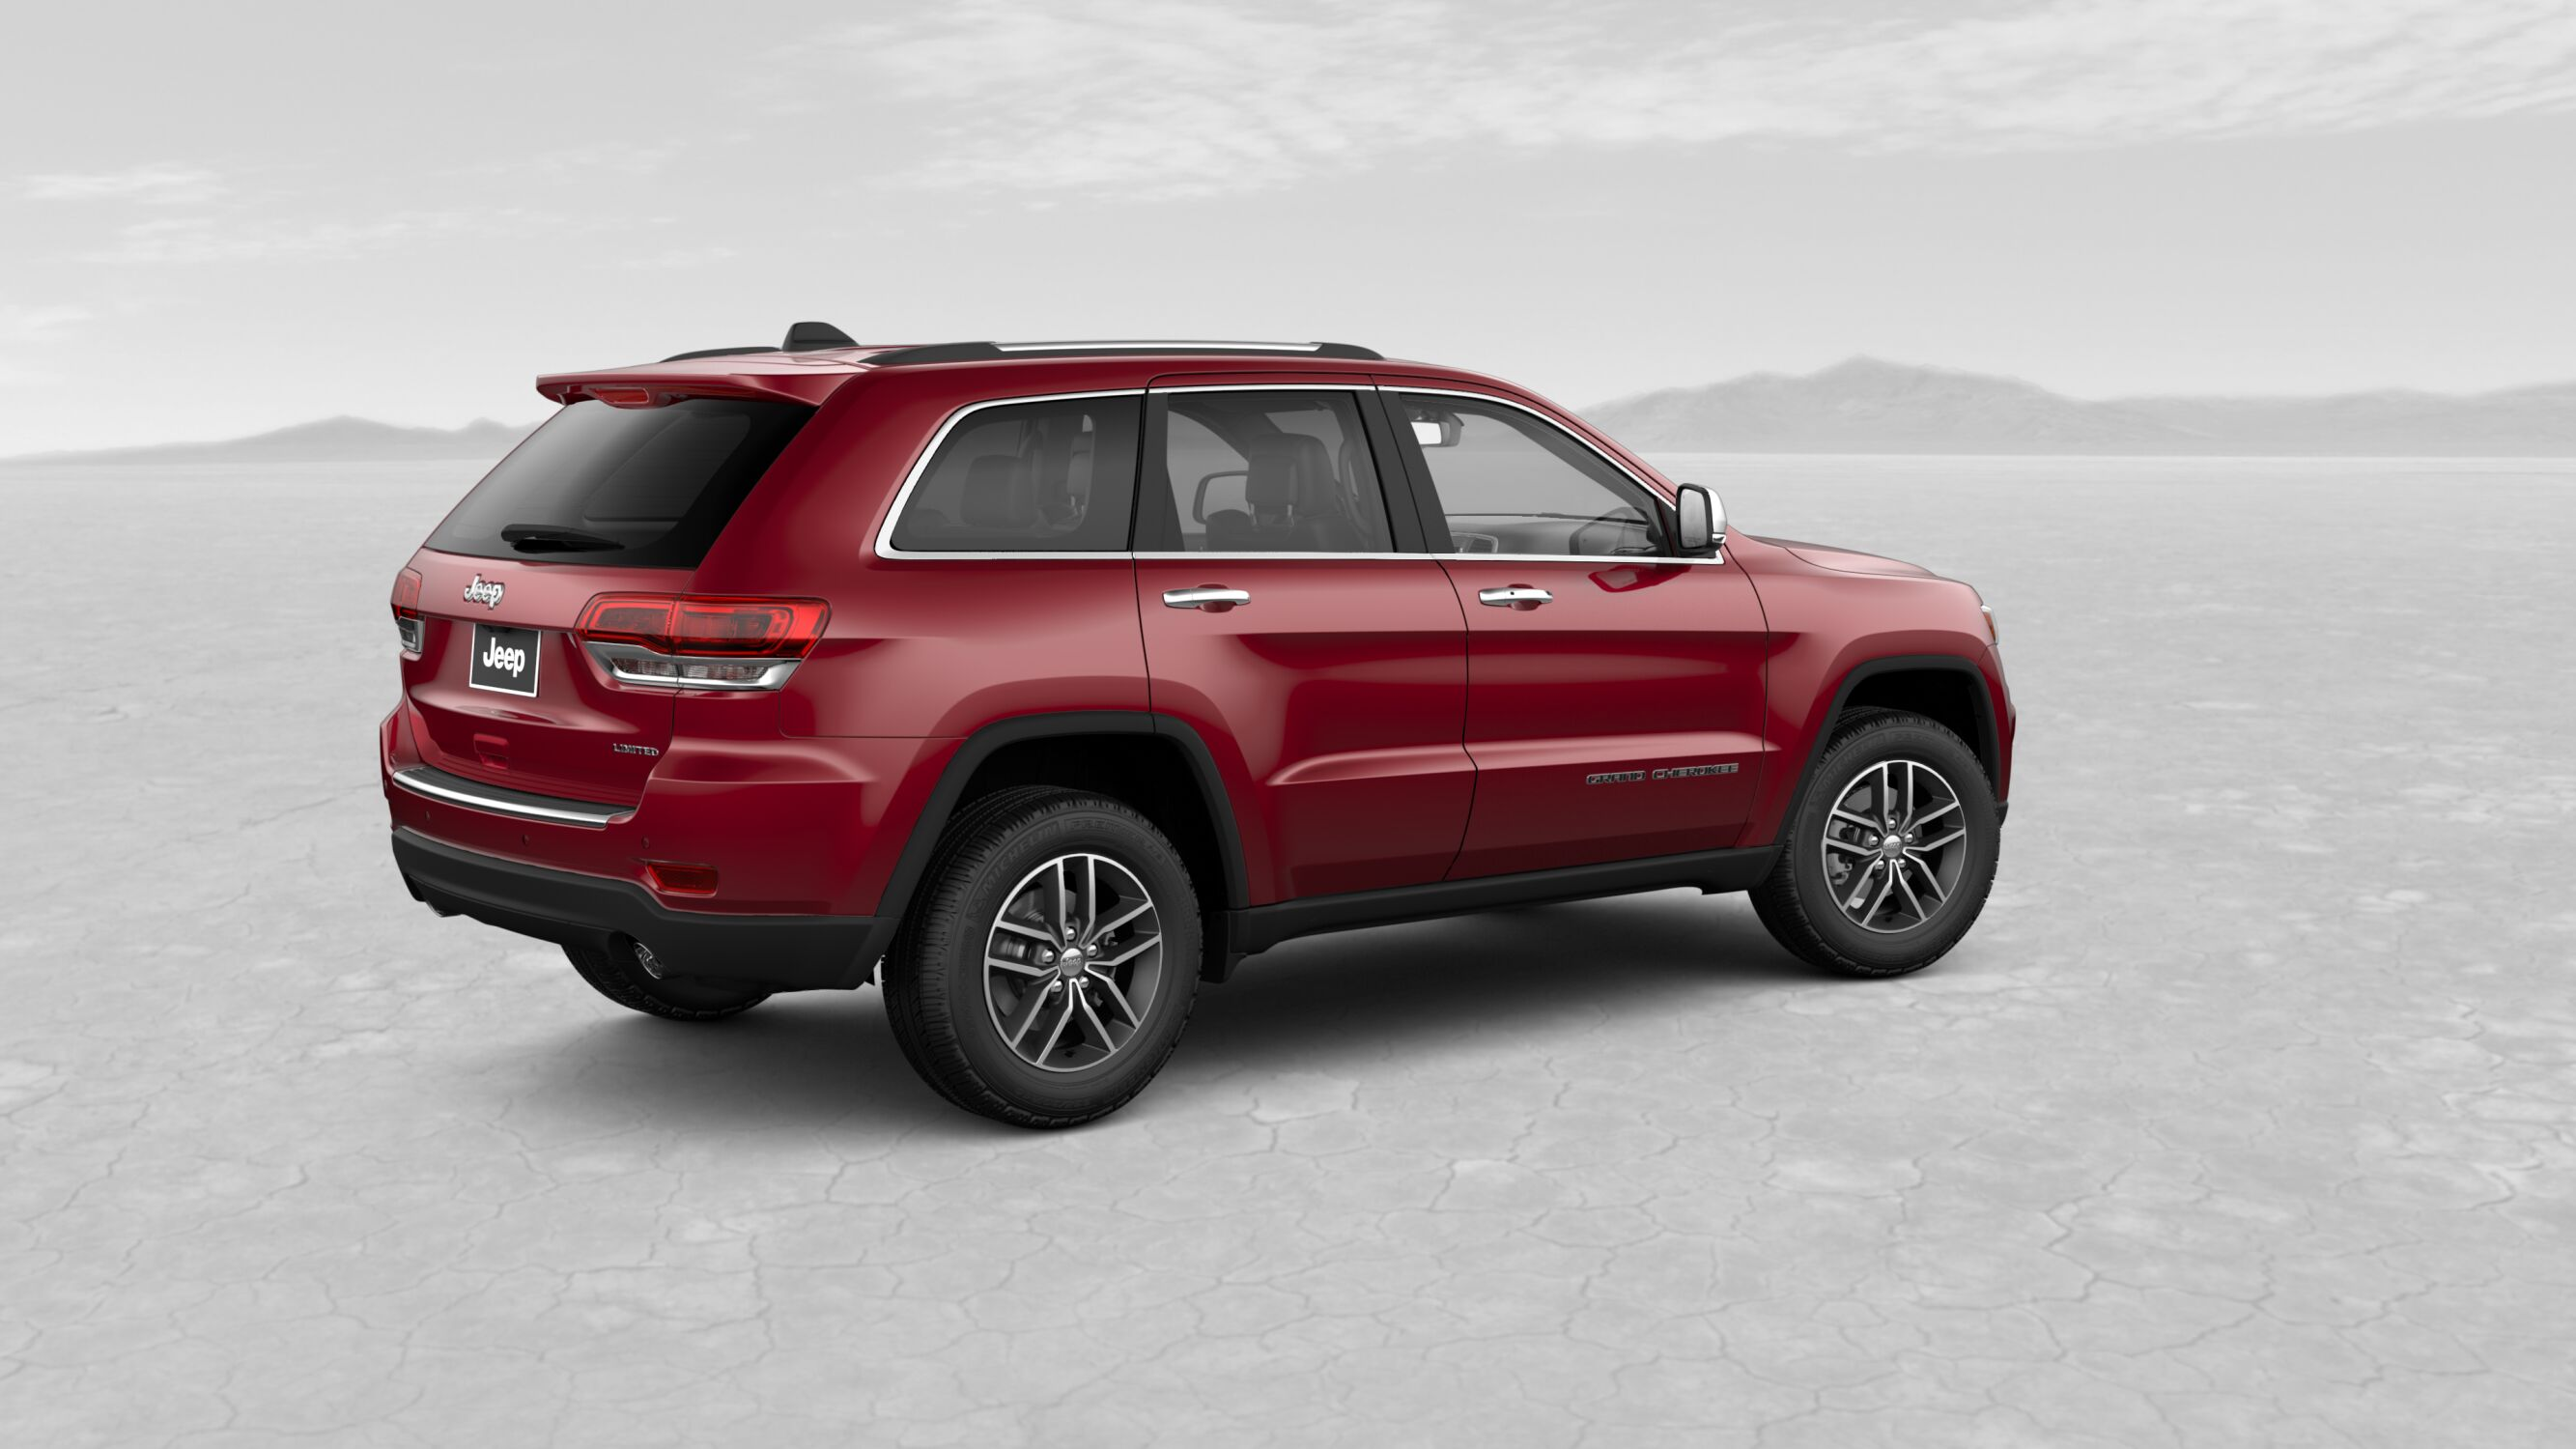 new rogers chrysler ram the me dealers dodge jeep near